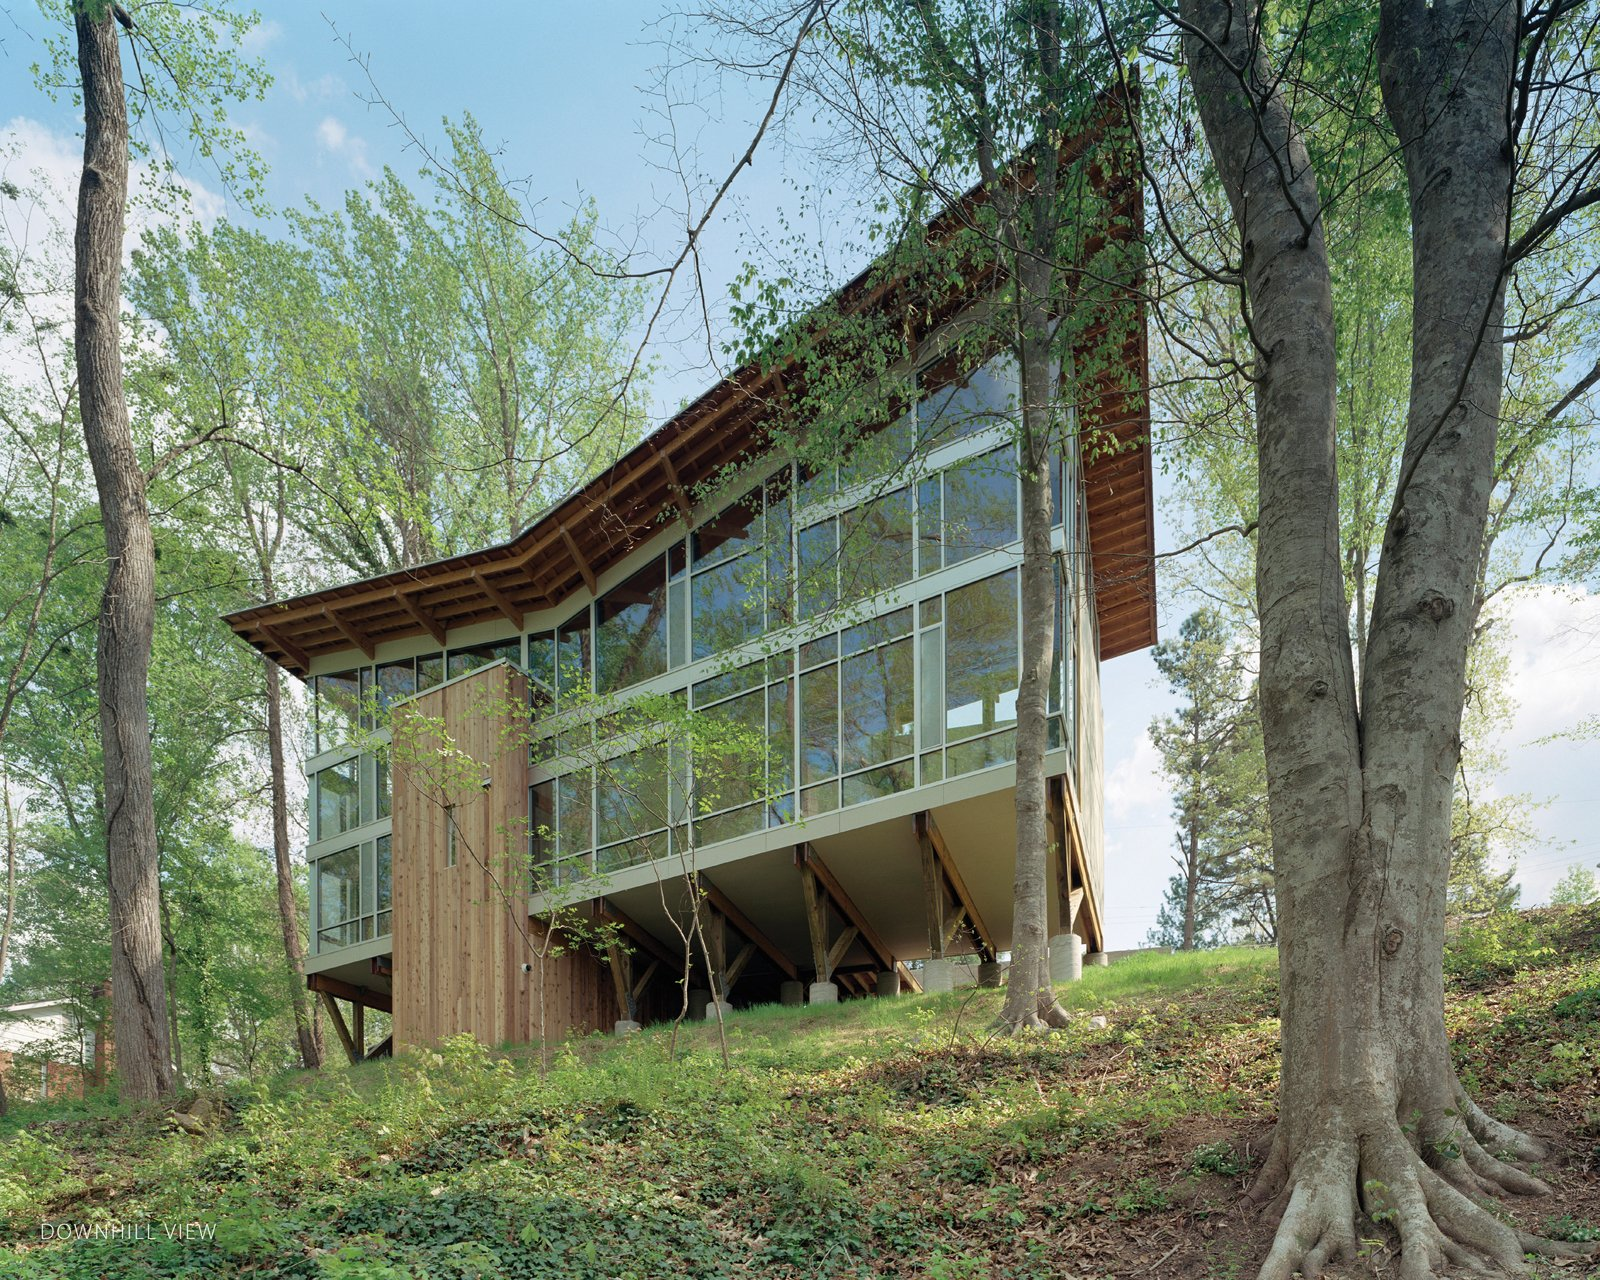 The house is perched on nine broad wood trusses to avoid cutting a single tree. The trusses also permit air and water to flow under the house, preserving the hydrology. The butterfly-shaped roof opens views to the creek and funnels rainwater into a collection system.  Photo 23 of 30 in Triangle House Tours